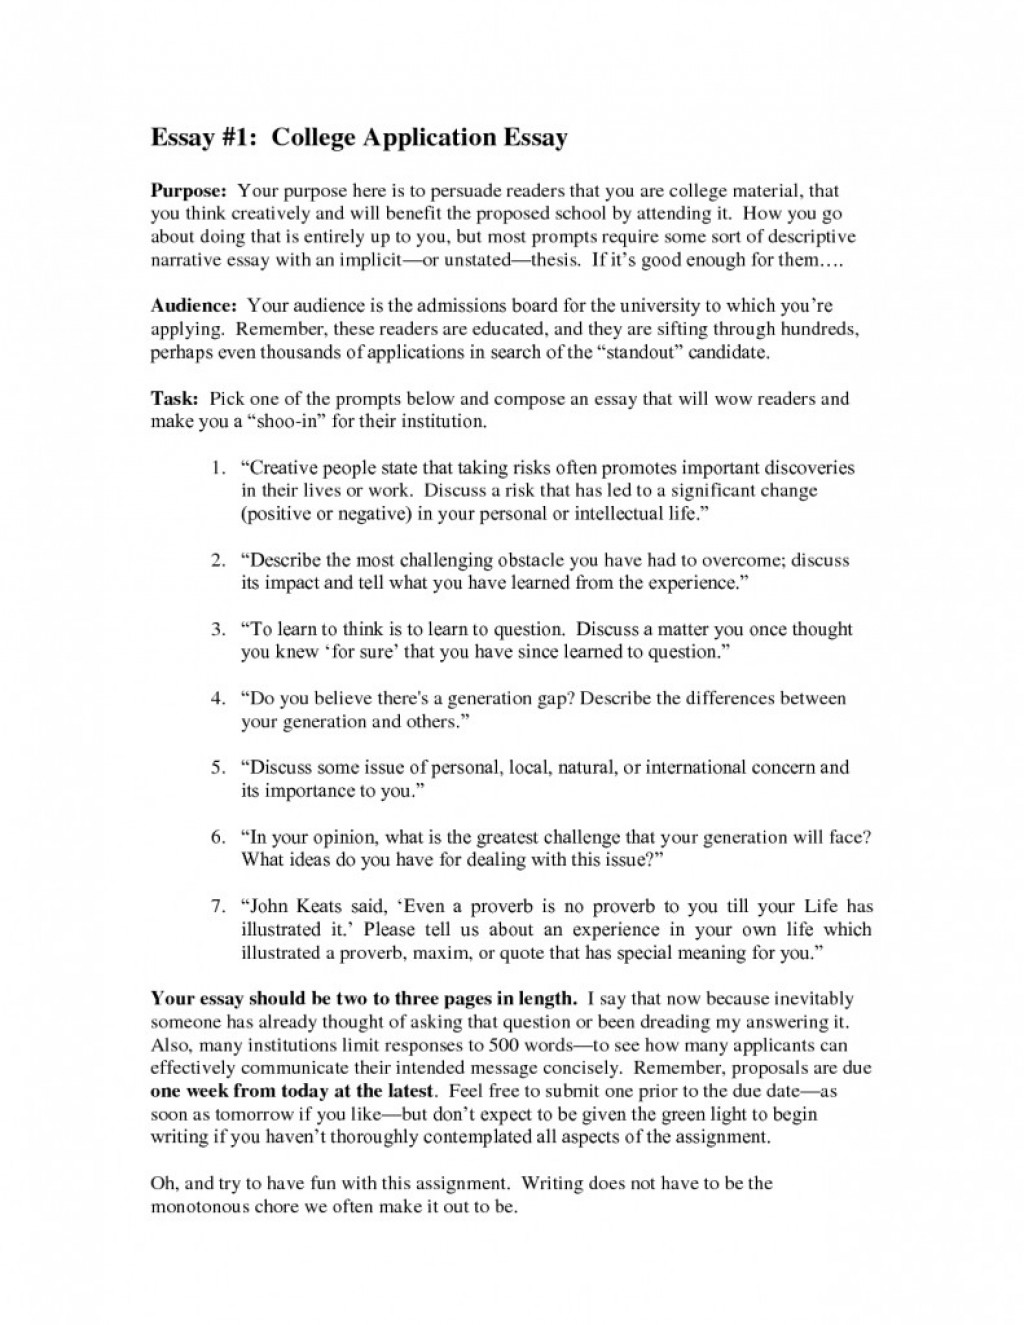 003 Essay Example College Application 791x1024 Life Formidable Lesson Valuable My Life's Greatest Ideas Large